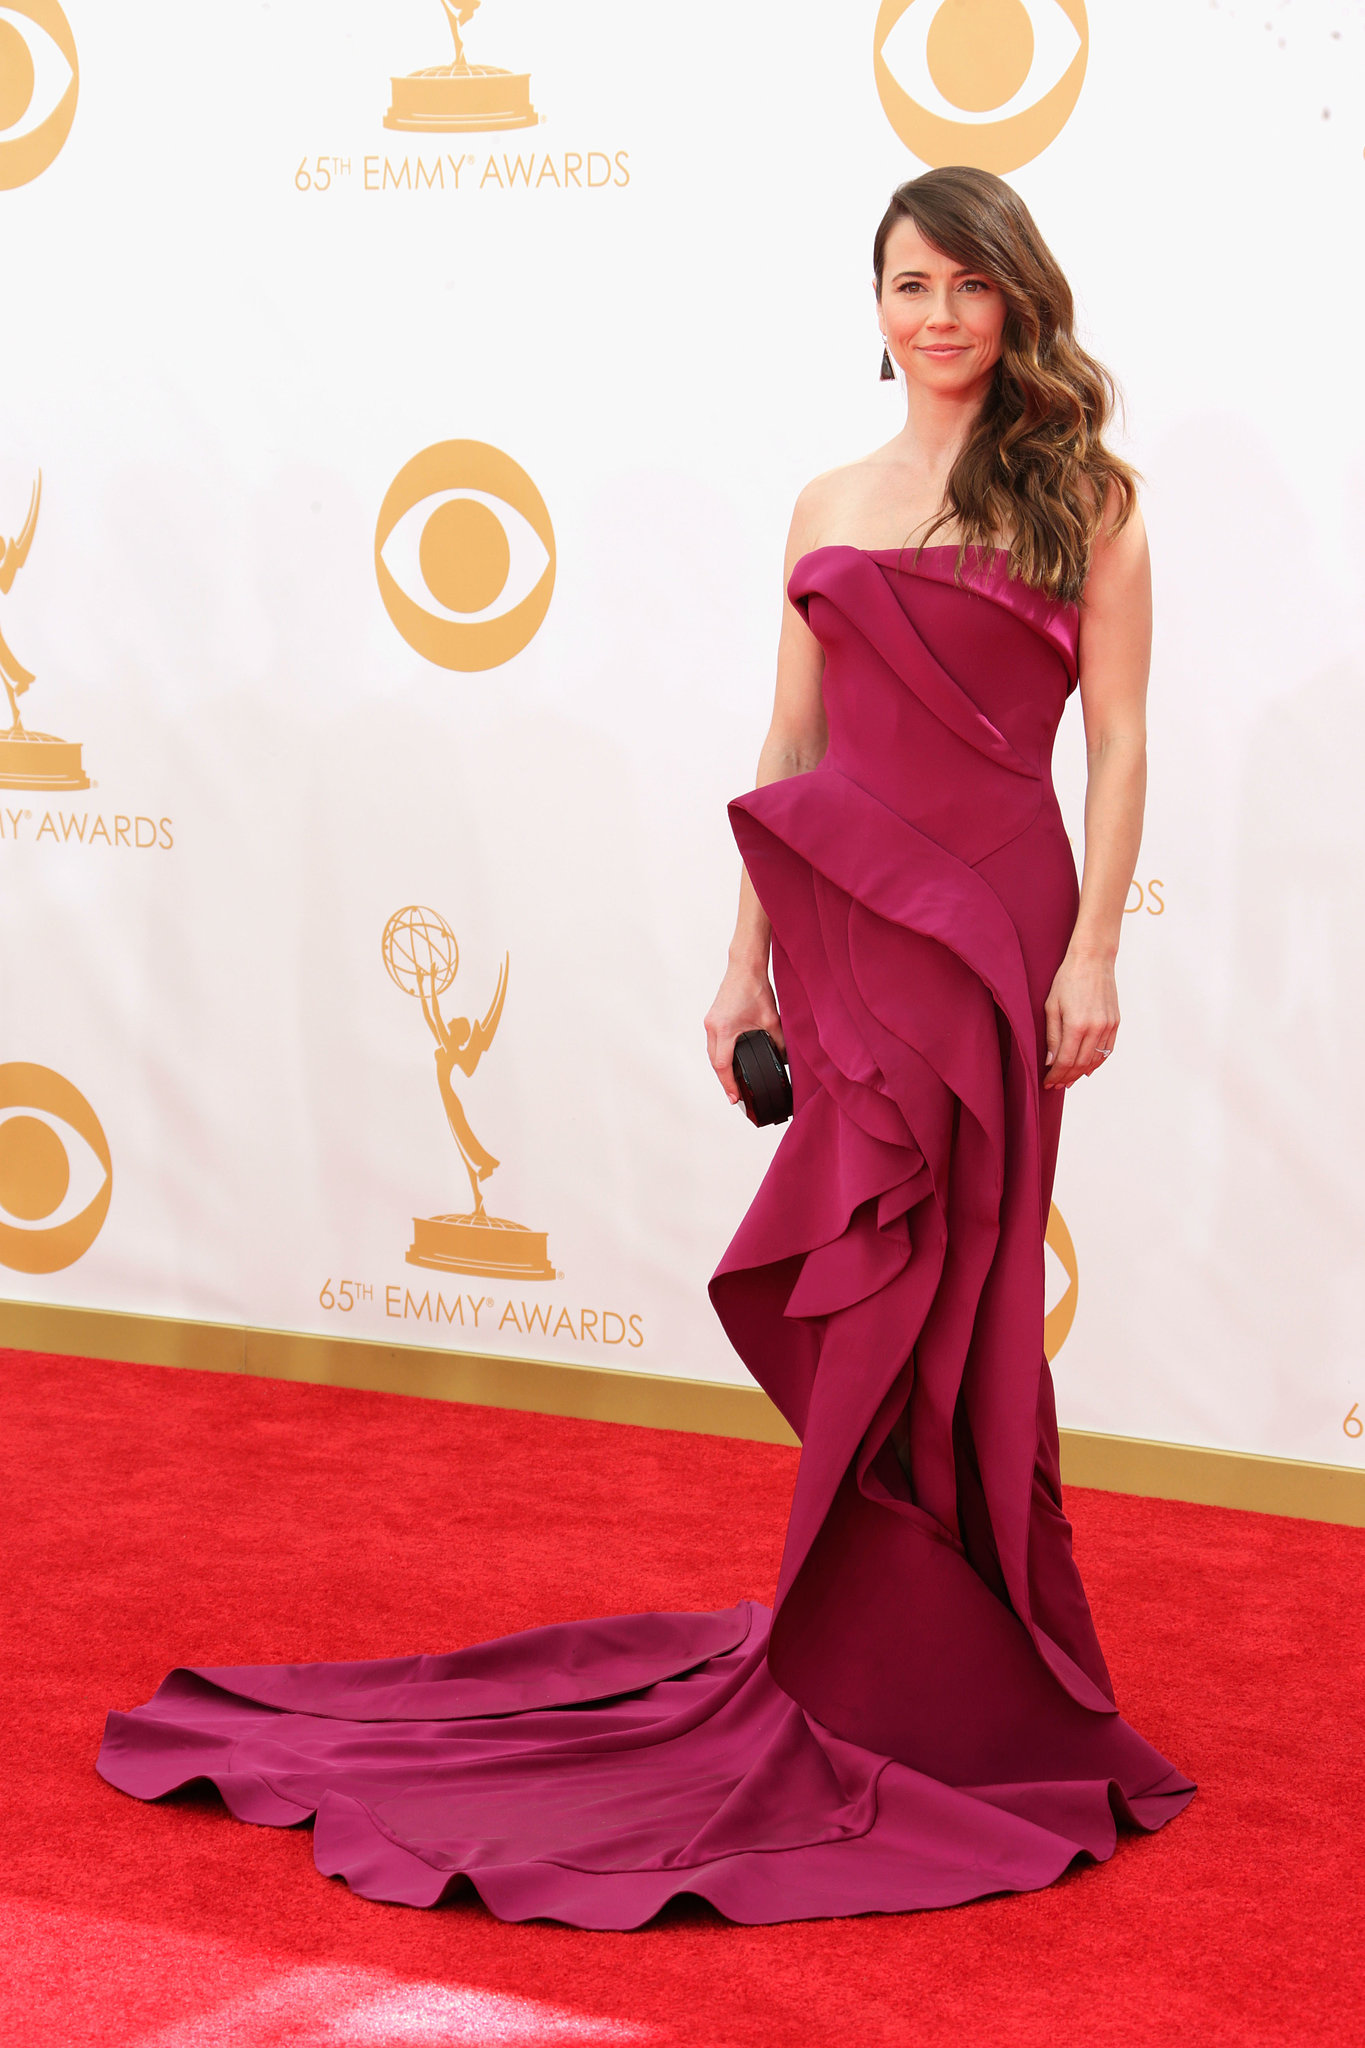 Ruffles ruled the night for Linda Cardellini, who picked a dramatic magenta Donna Karan Atelier gown. The dramatic look was finished off with Jimmy Choo shoes, Irene Neuwirth jewels, and a Ra